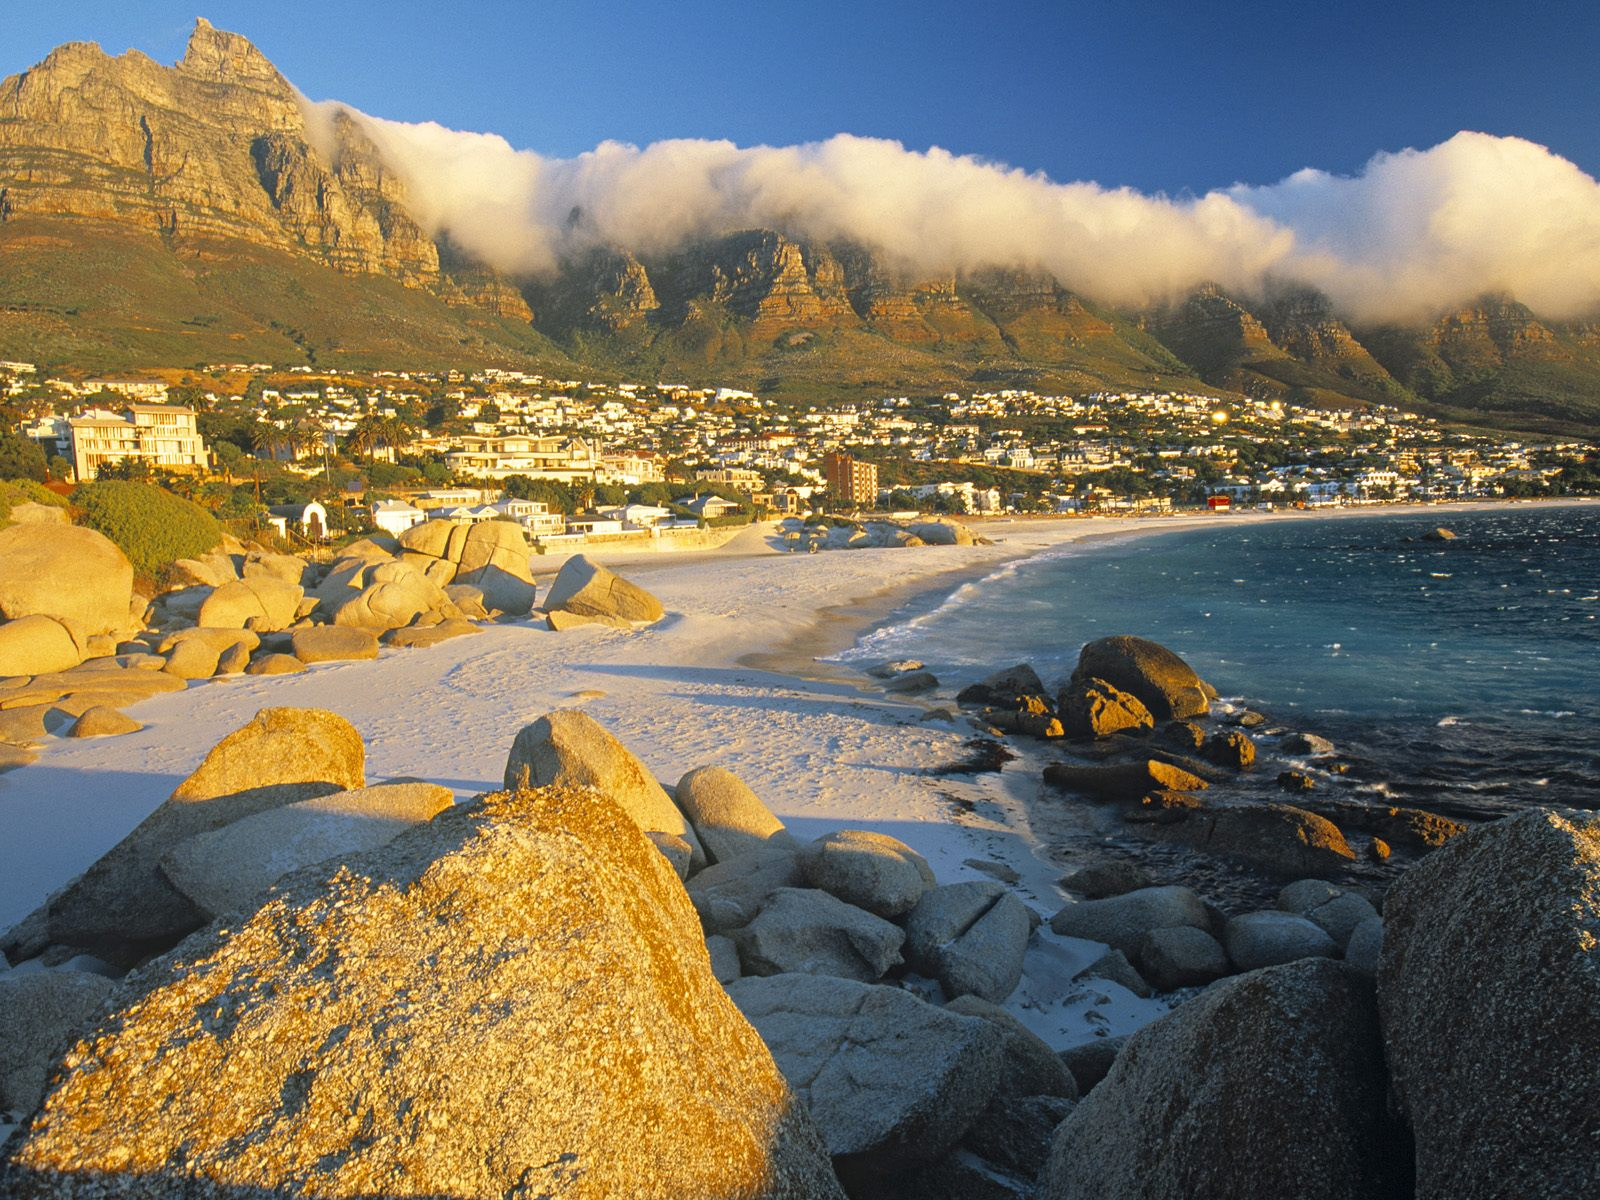 Cape Town South Africa   Africa Photography Desktop Wallpapers 23438 1600x1200